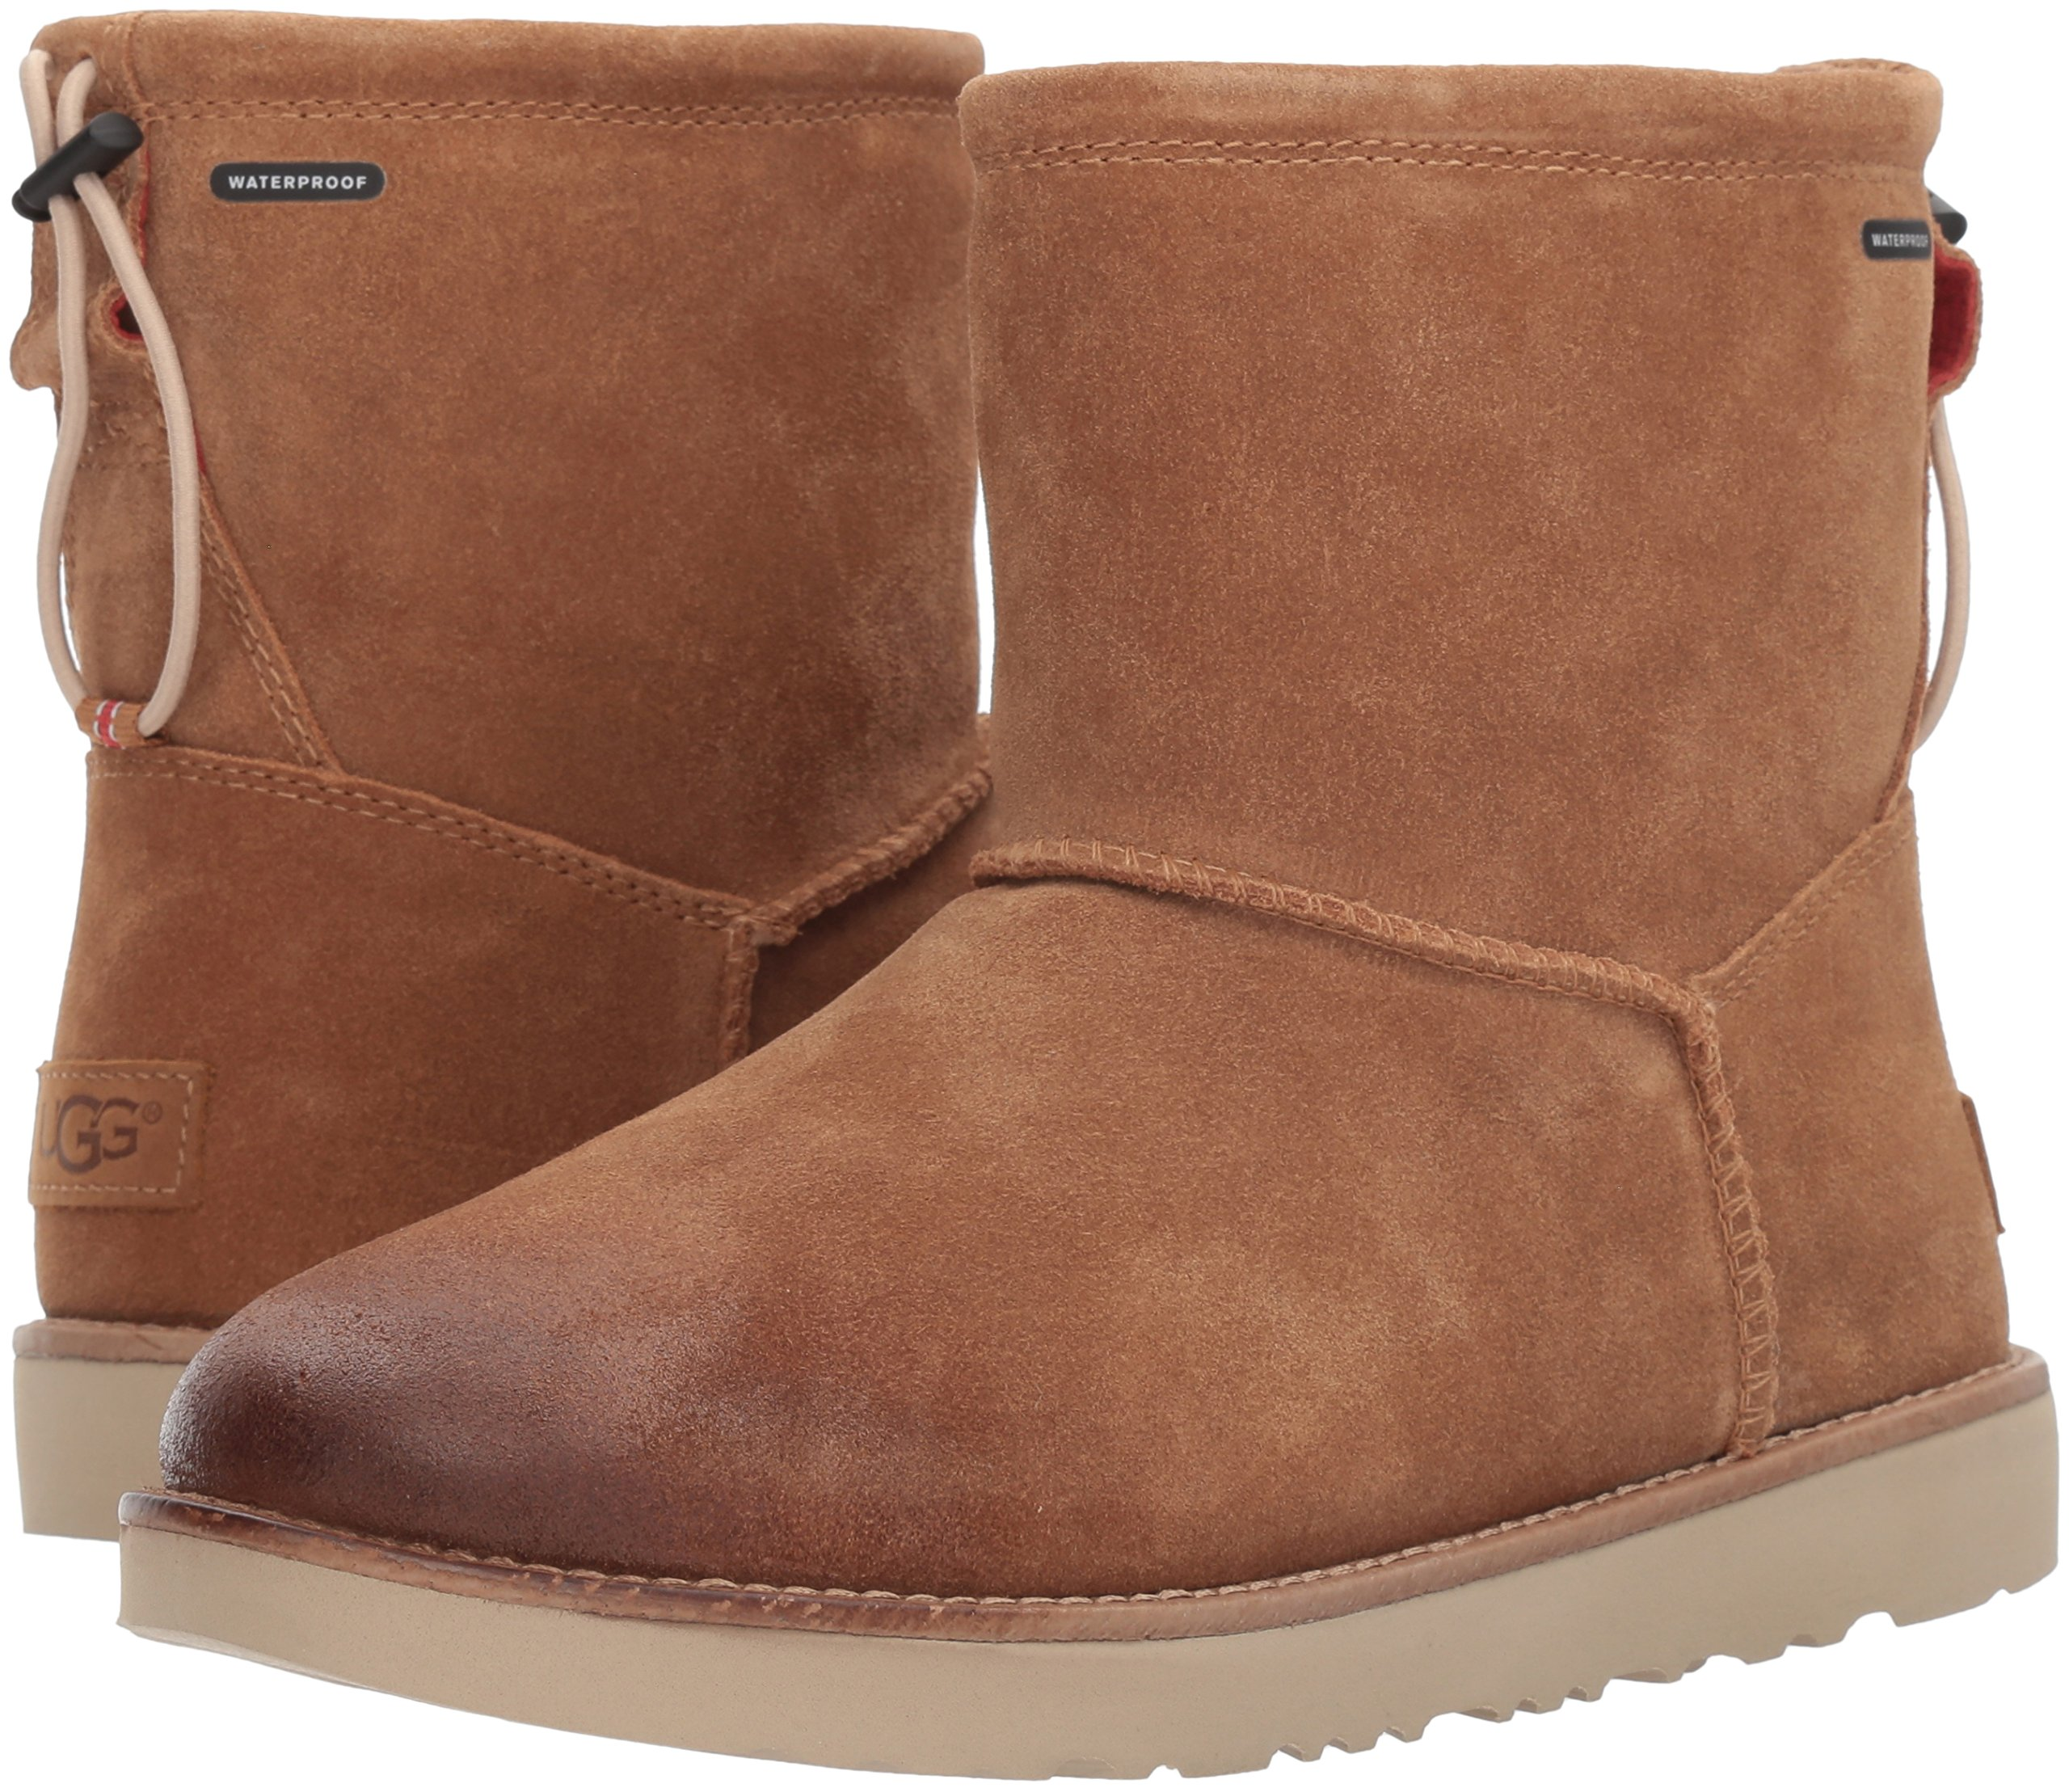 UGG Men's Classic Toggle Waterproof Winter Boot, Chestnut, 11 M US by UGG (Image #6)